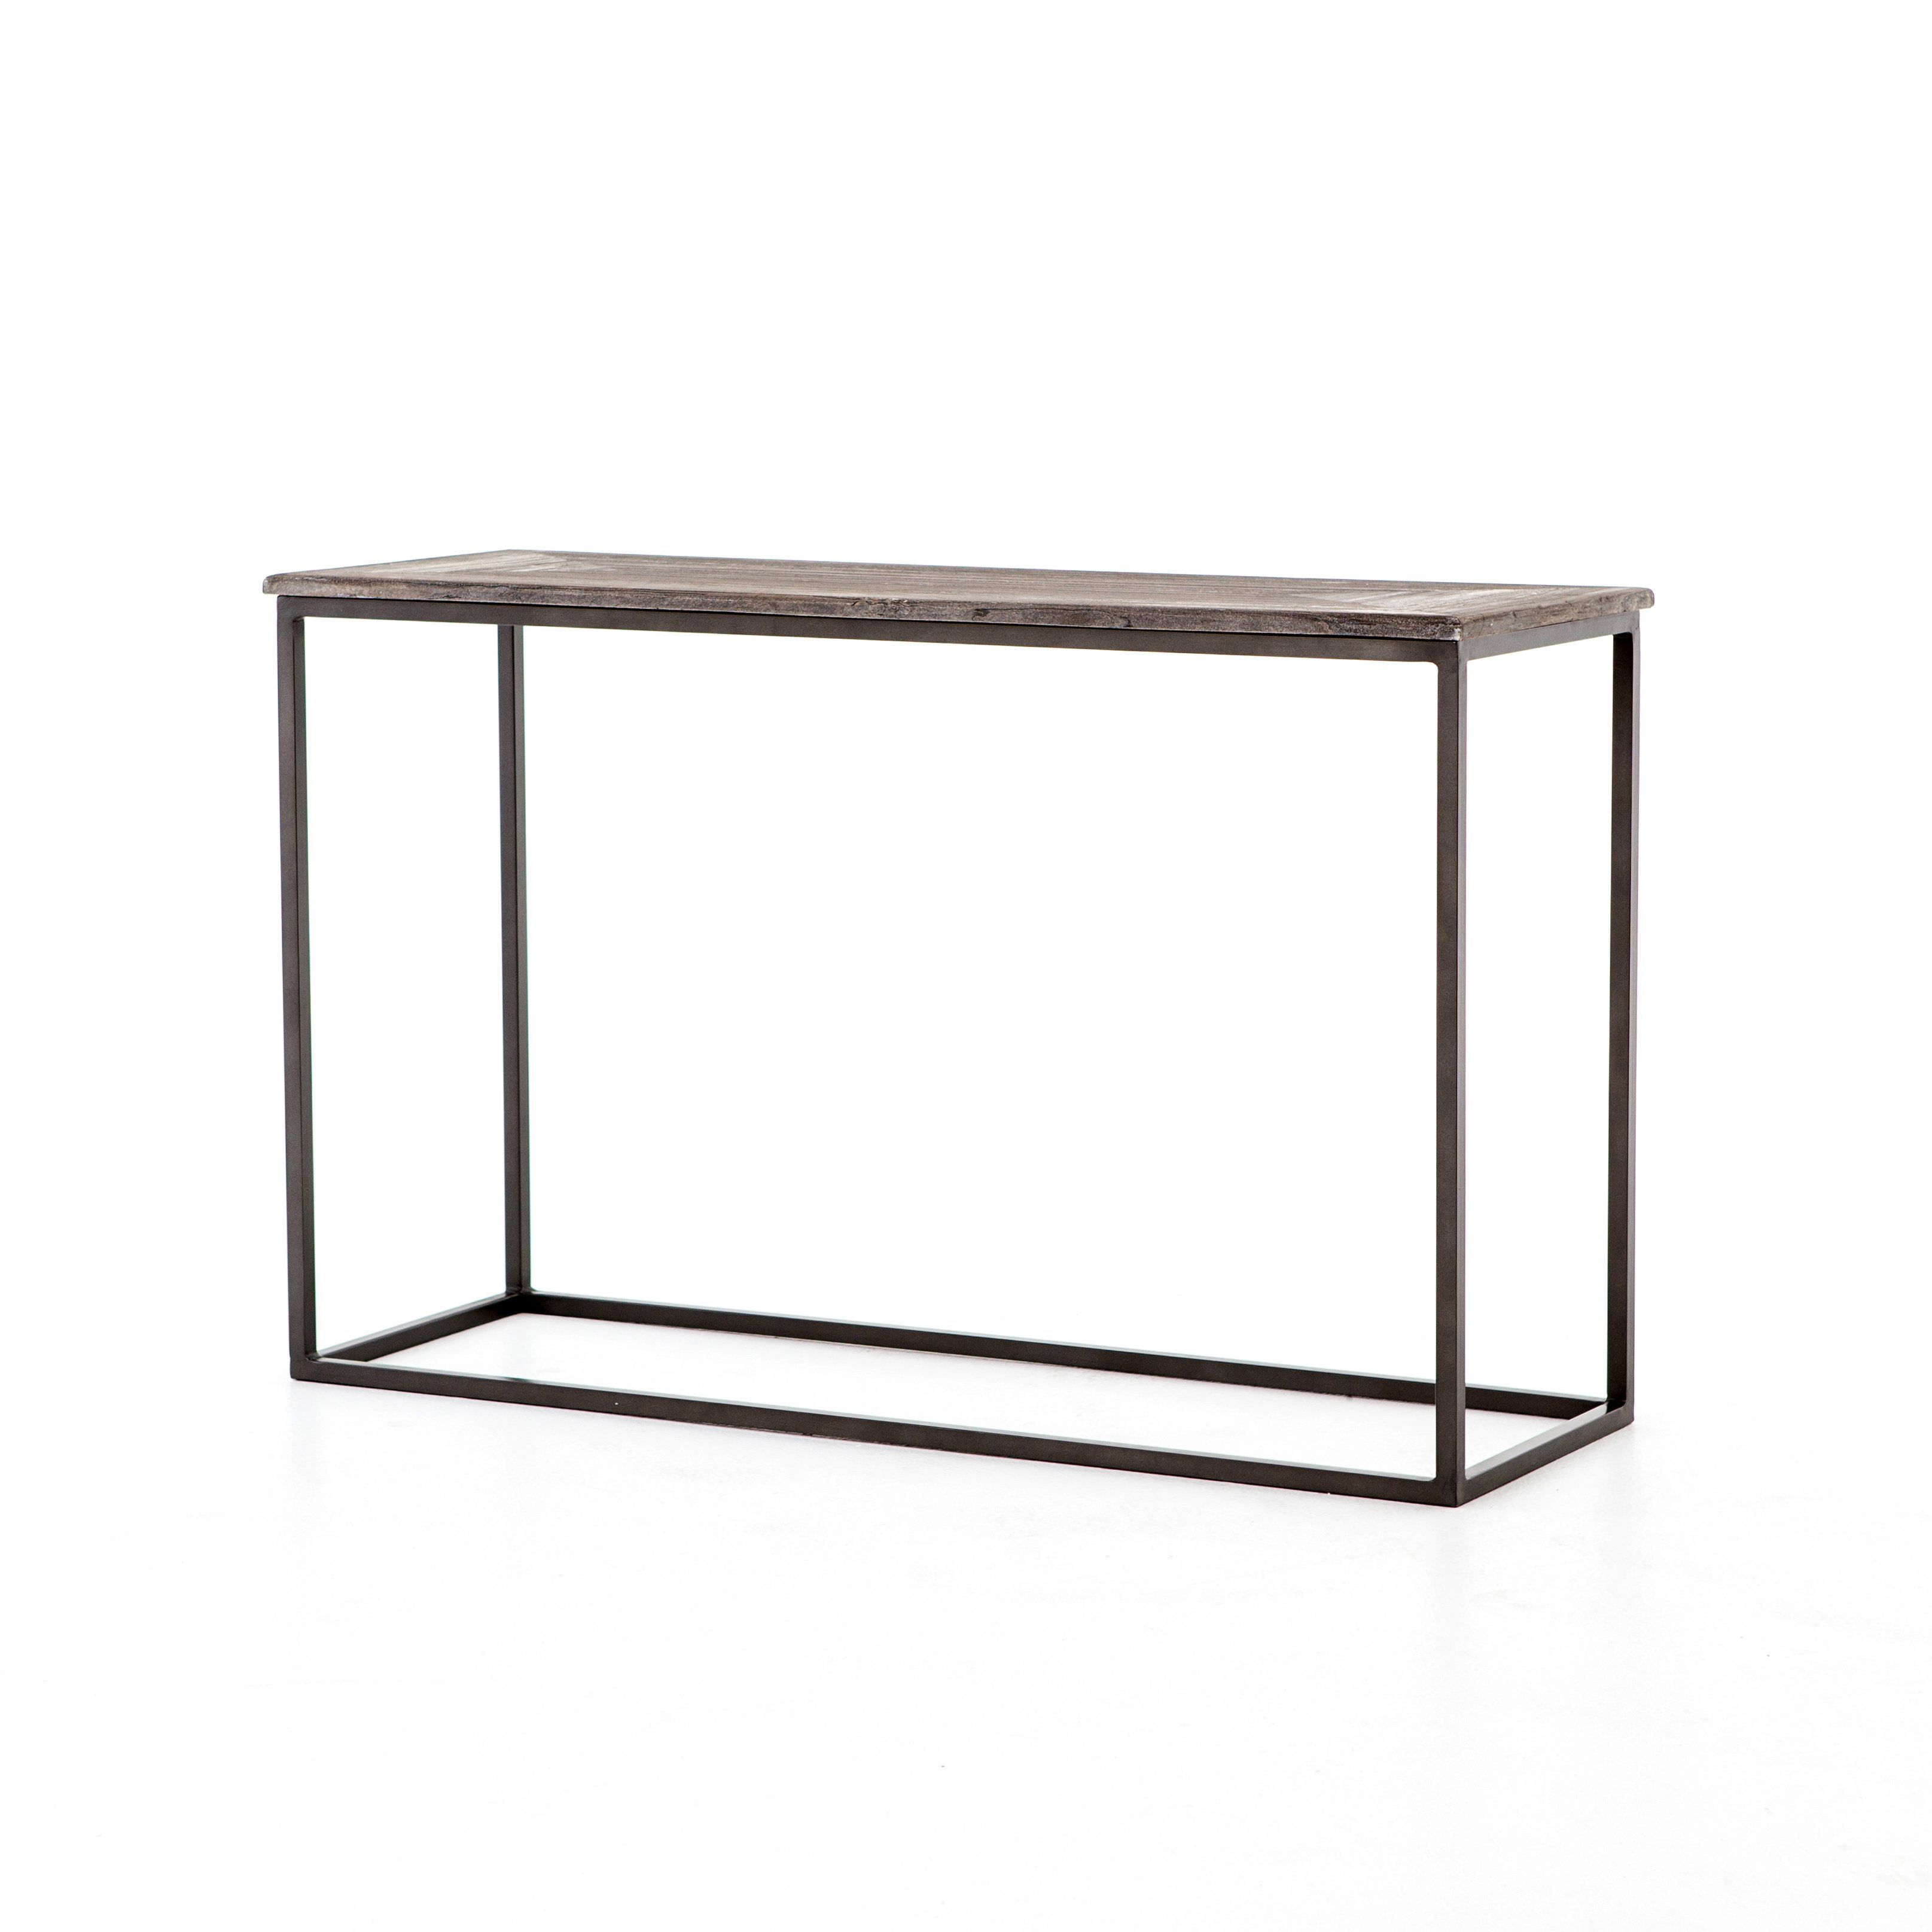 Juve console table